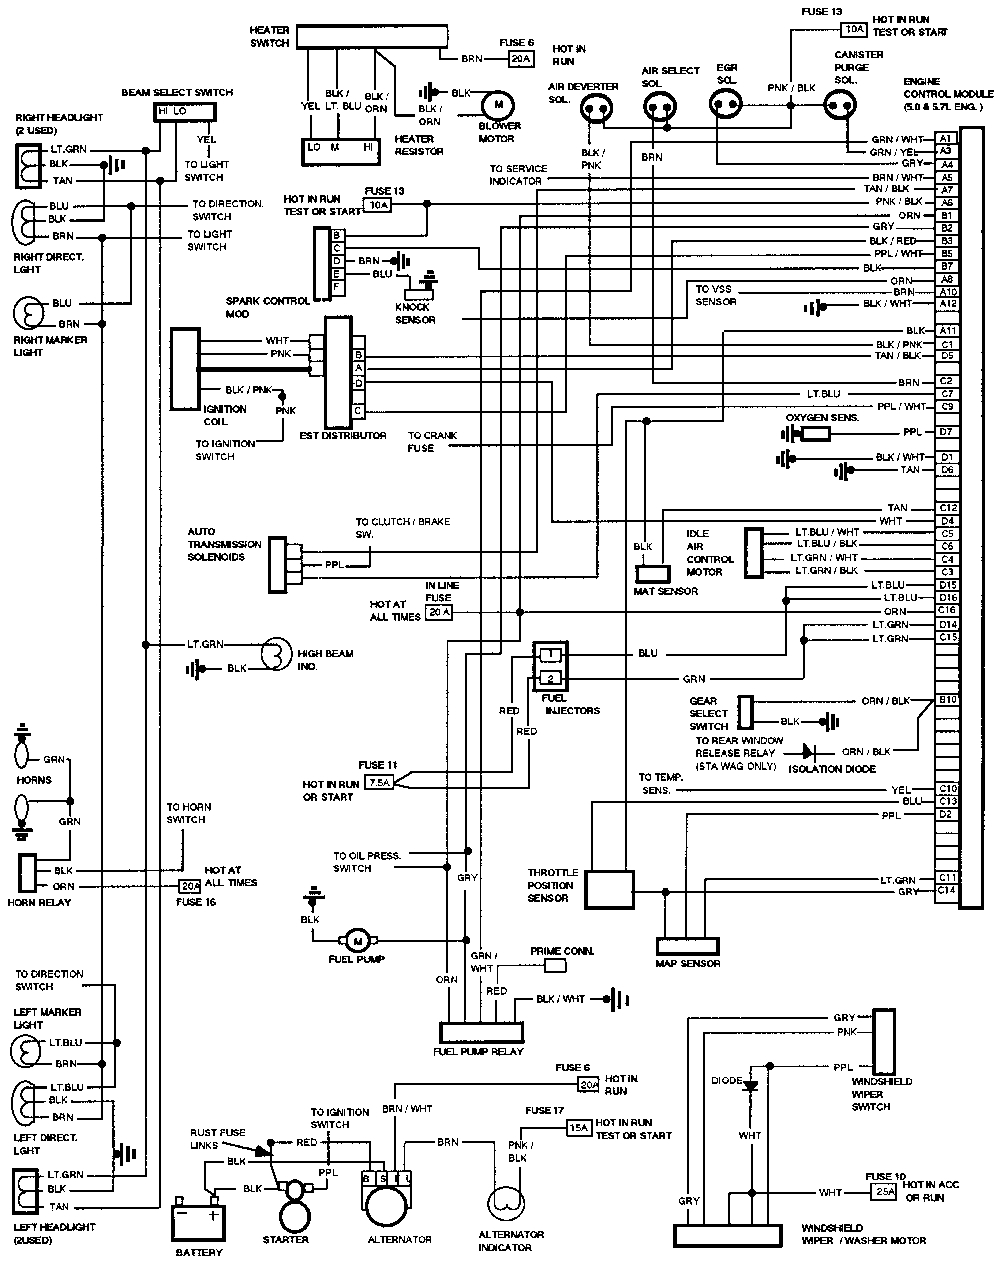 safety switch wiring diagram Download-Lokar Neutral Safety Switch Wiring Download safety switch wiring diagram Fresh 1996 4l60e Wiring Diagram 20-i